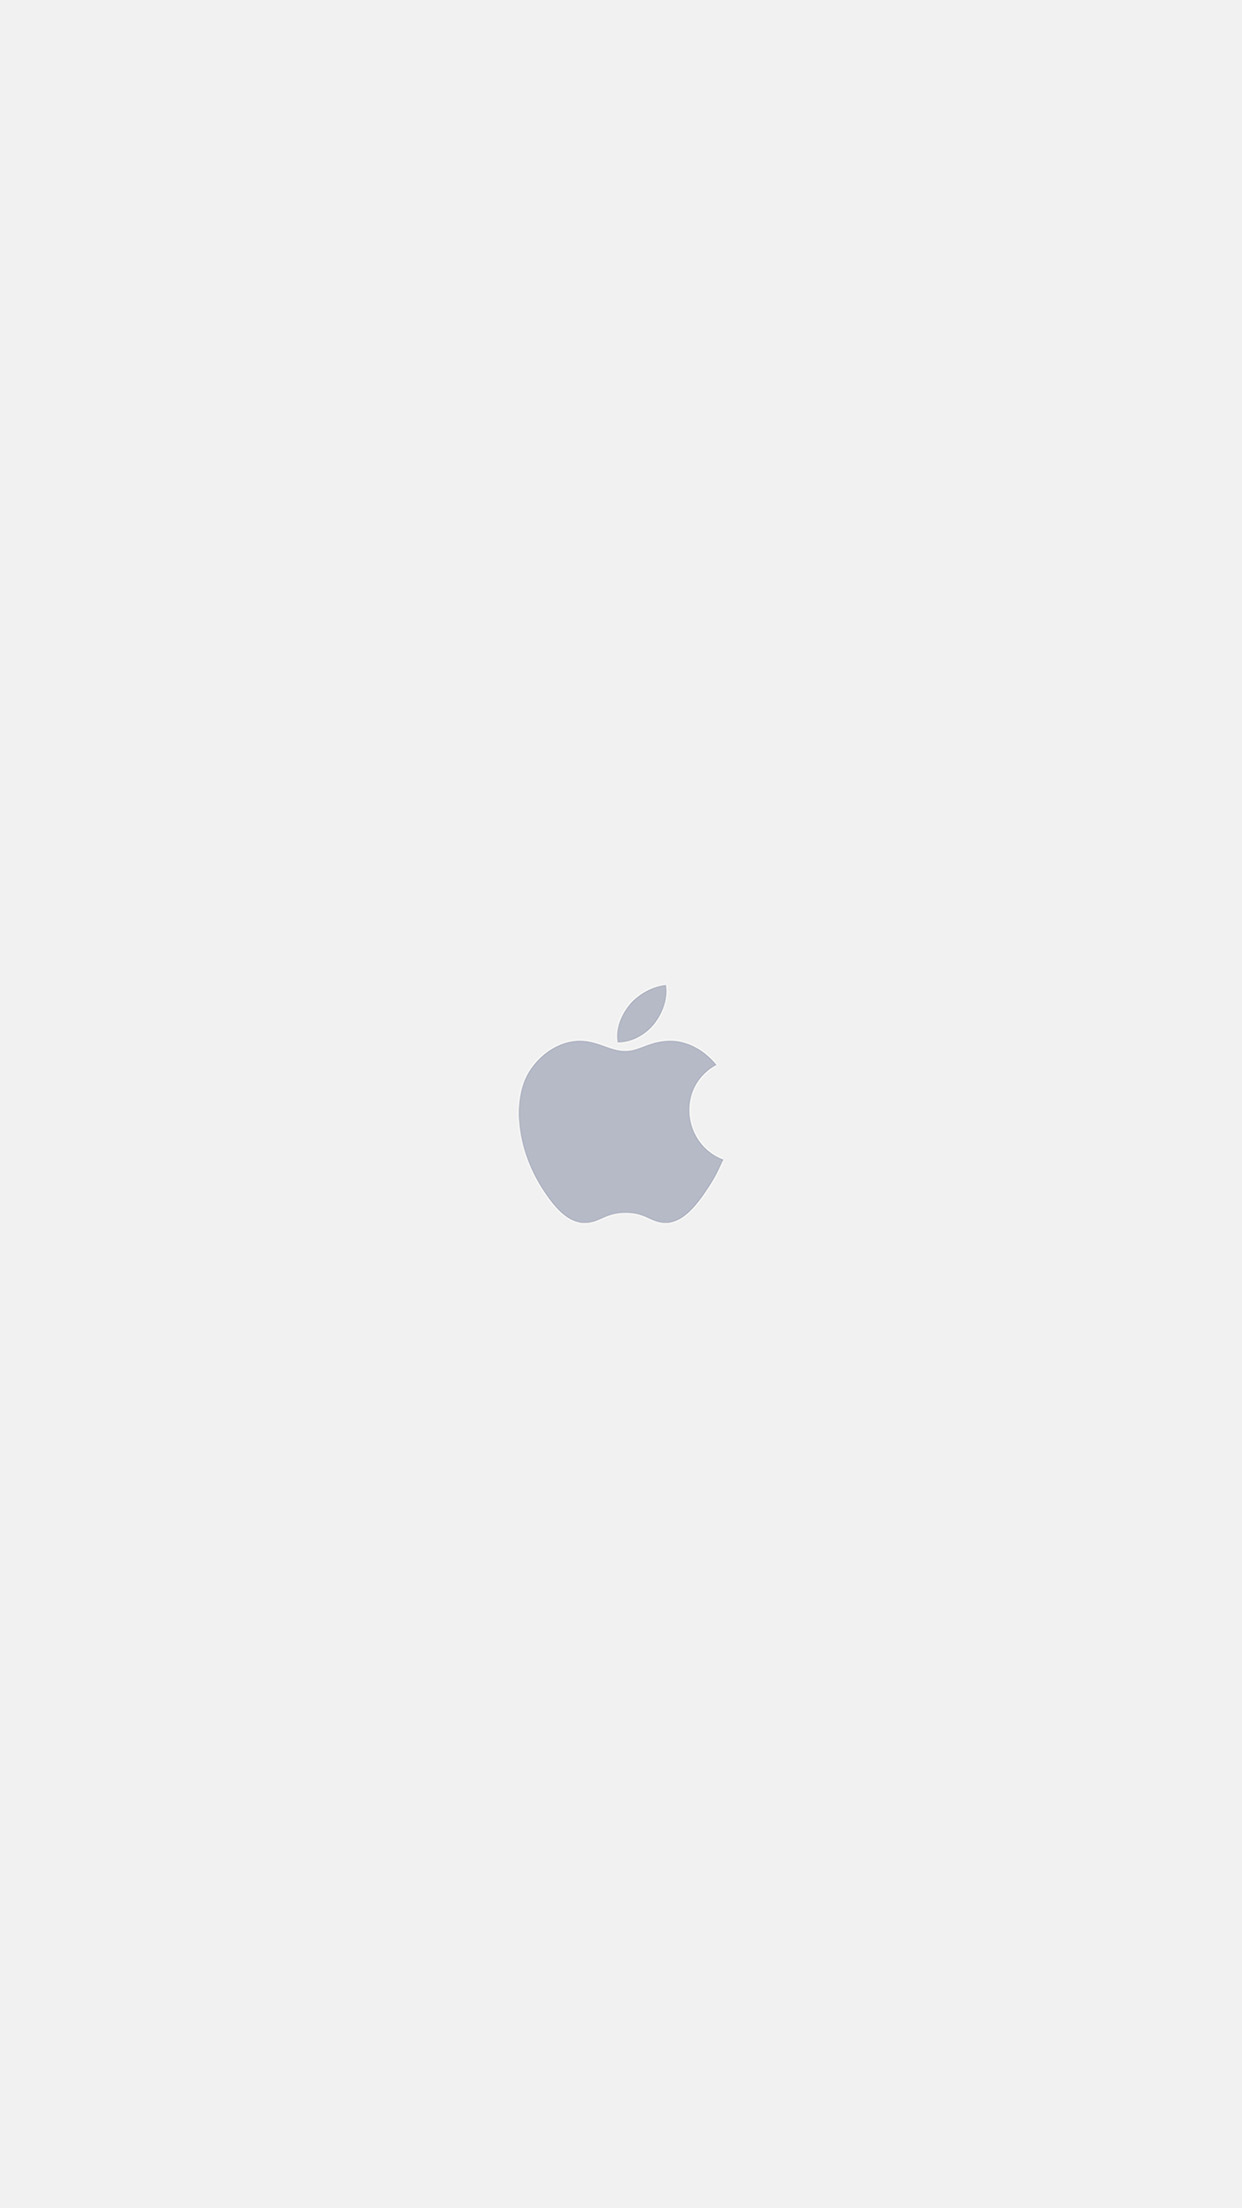 how to create apple logo on iphone